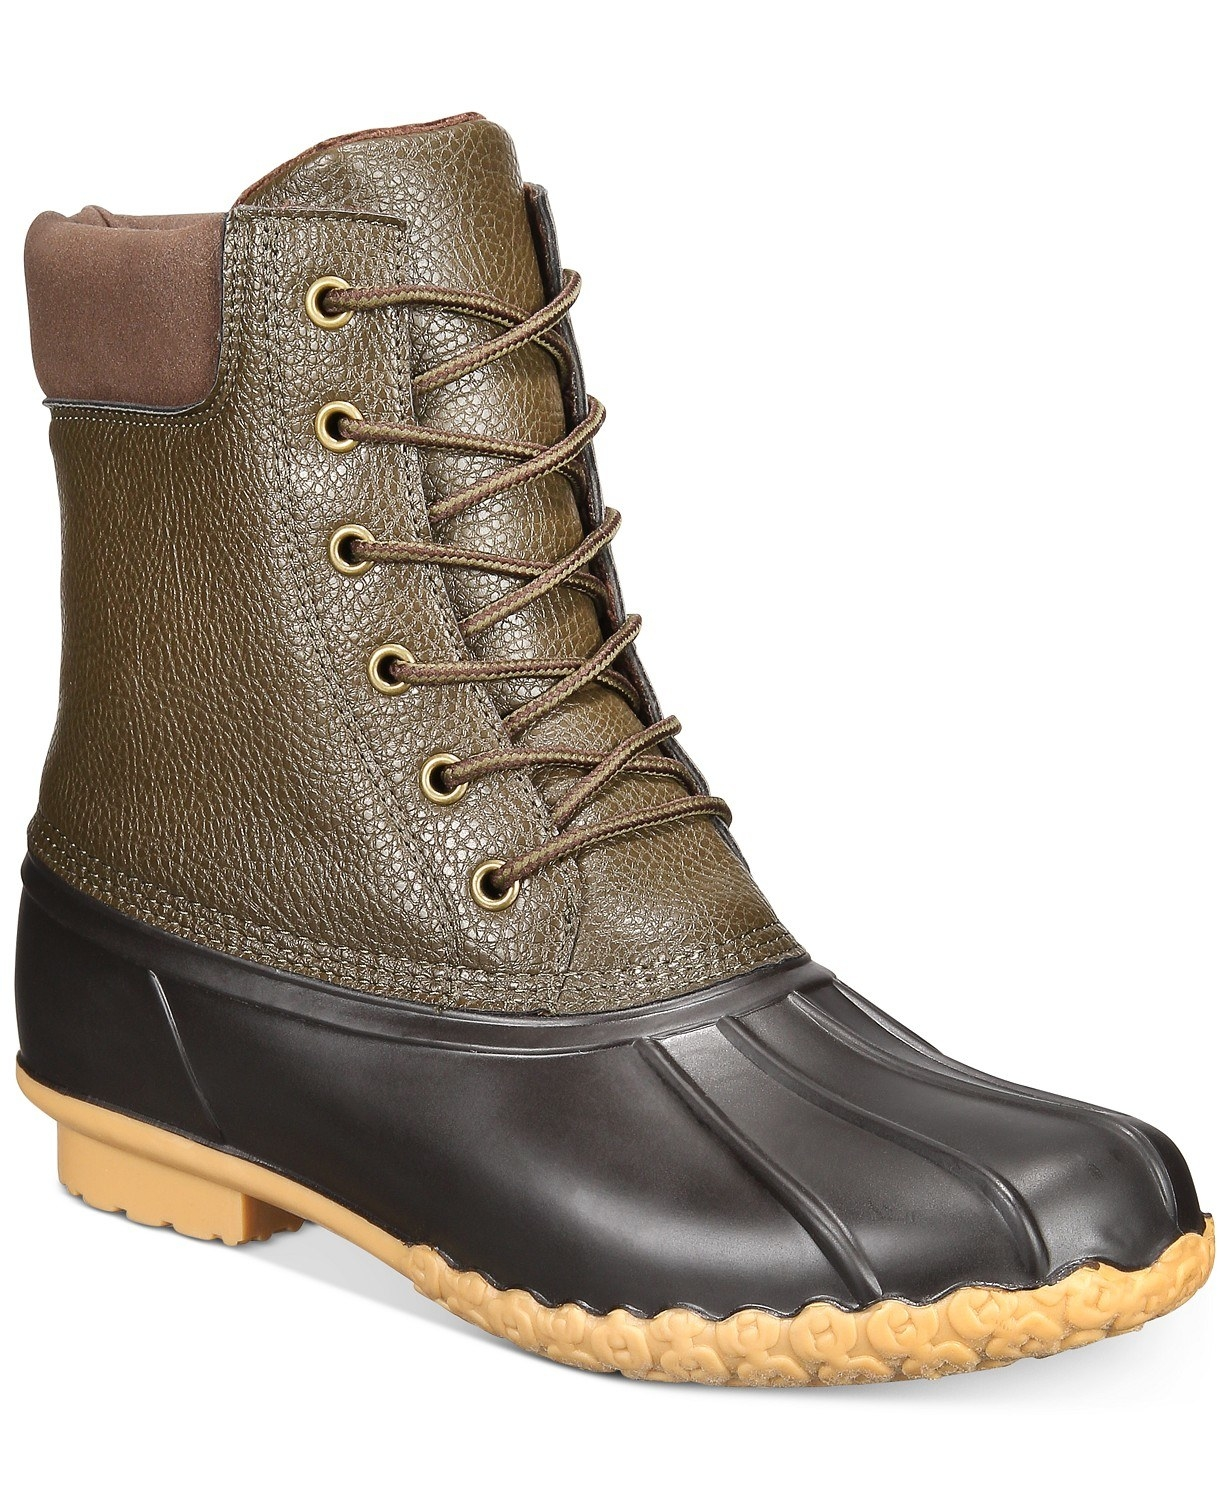 adam duck boots by weatherproof vintage in olive